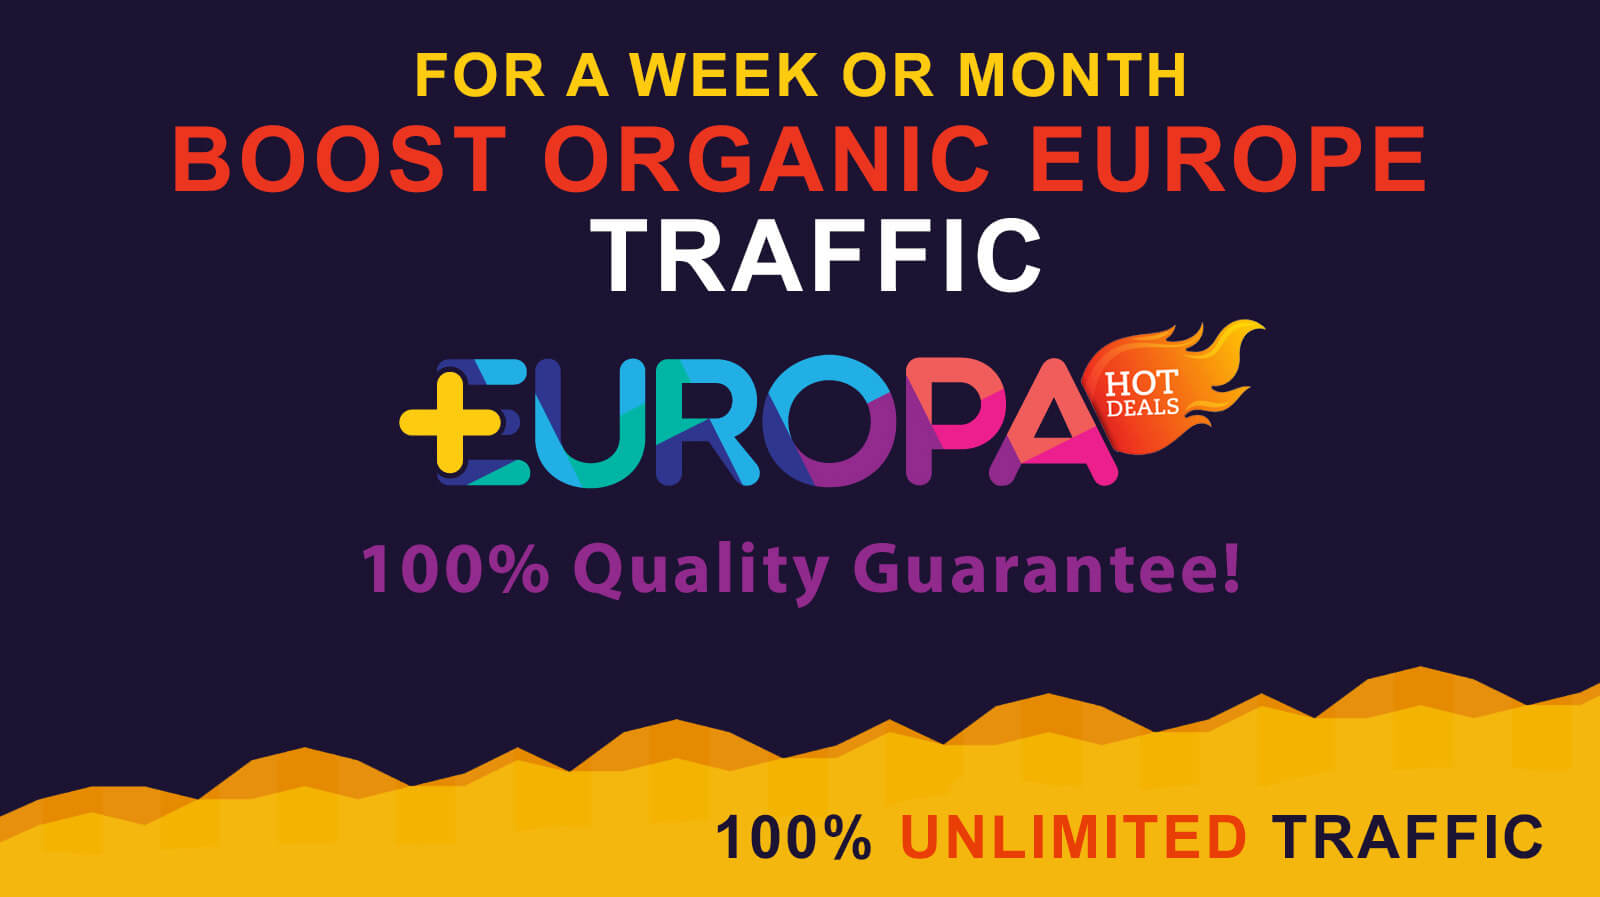 BOOST ORGANIC WEB TRAFFIC FROM EUROPA